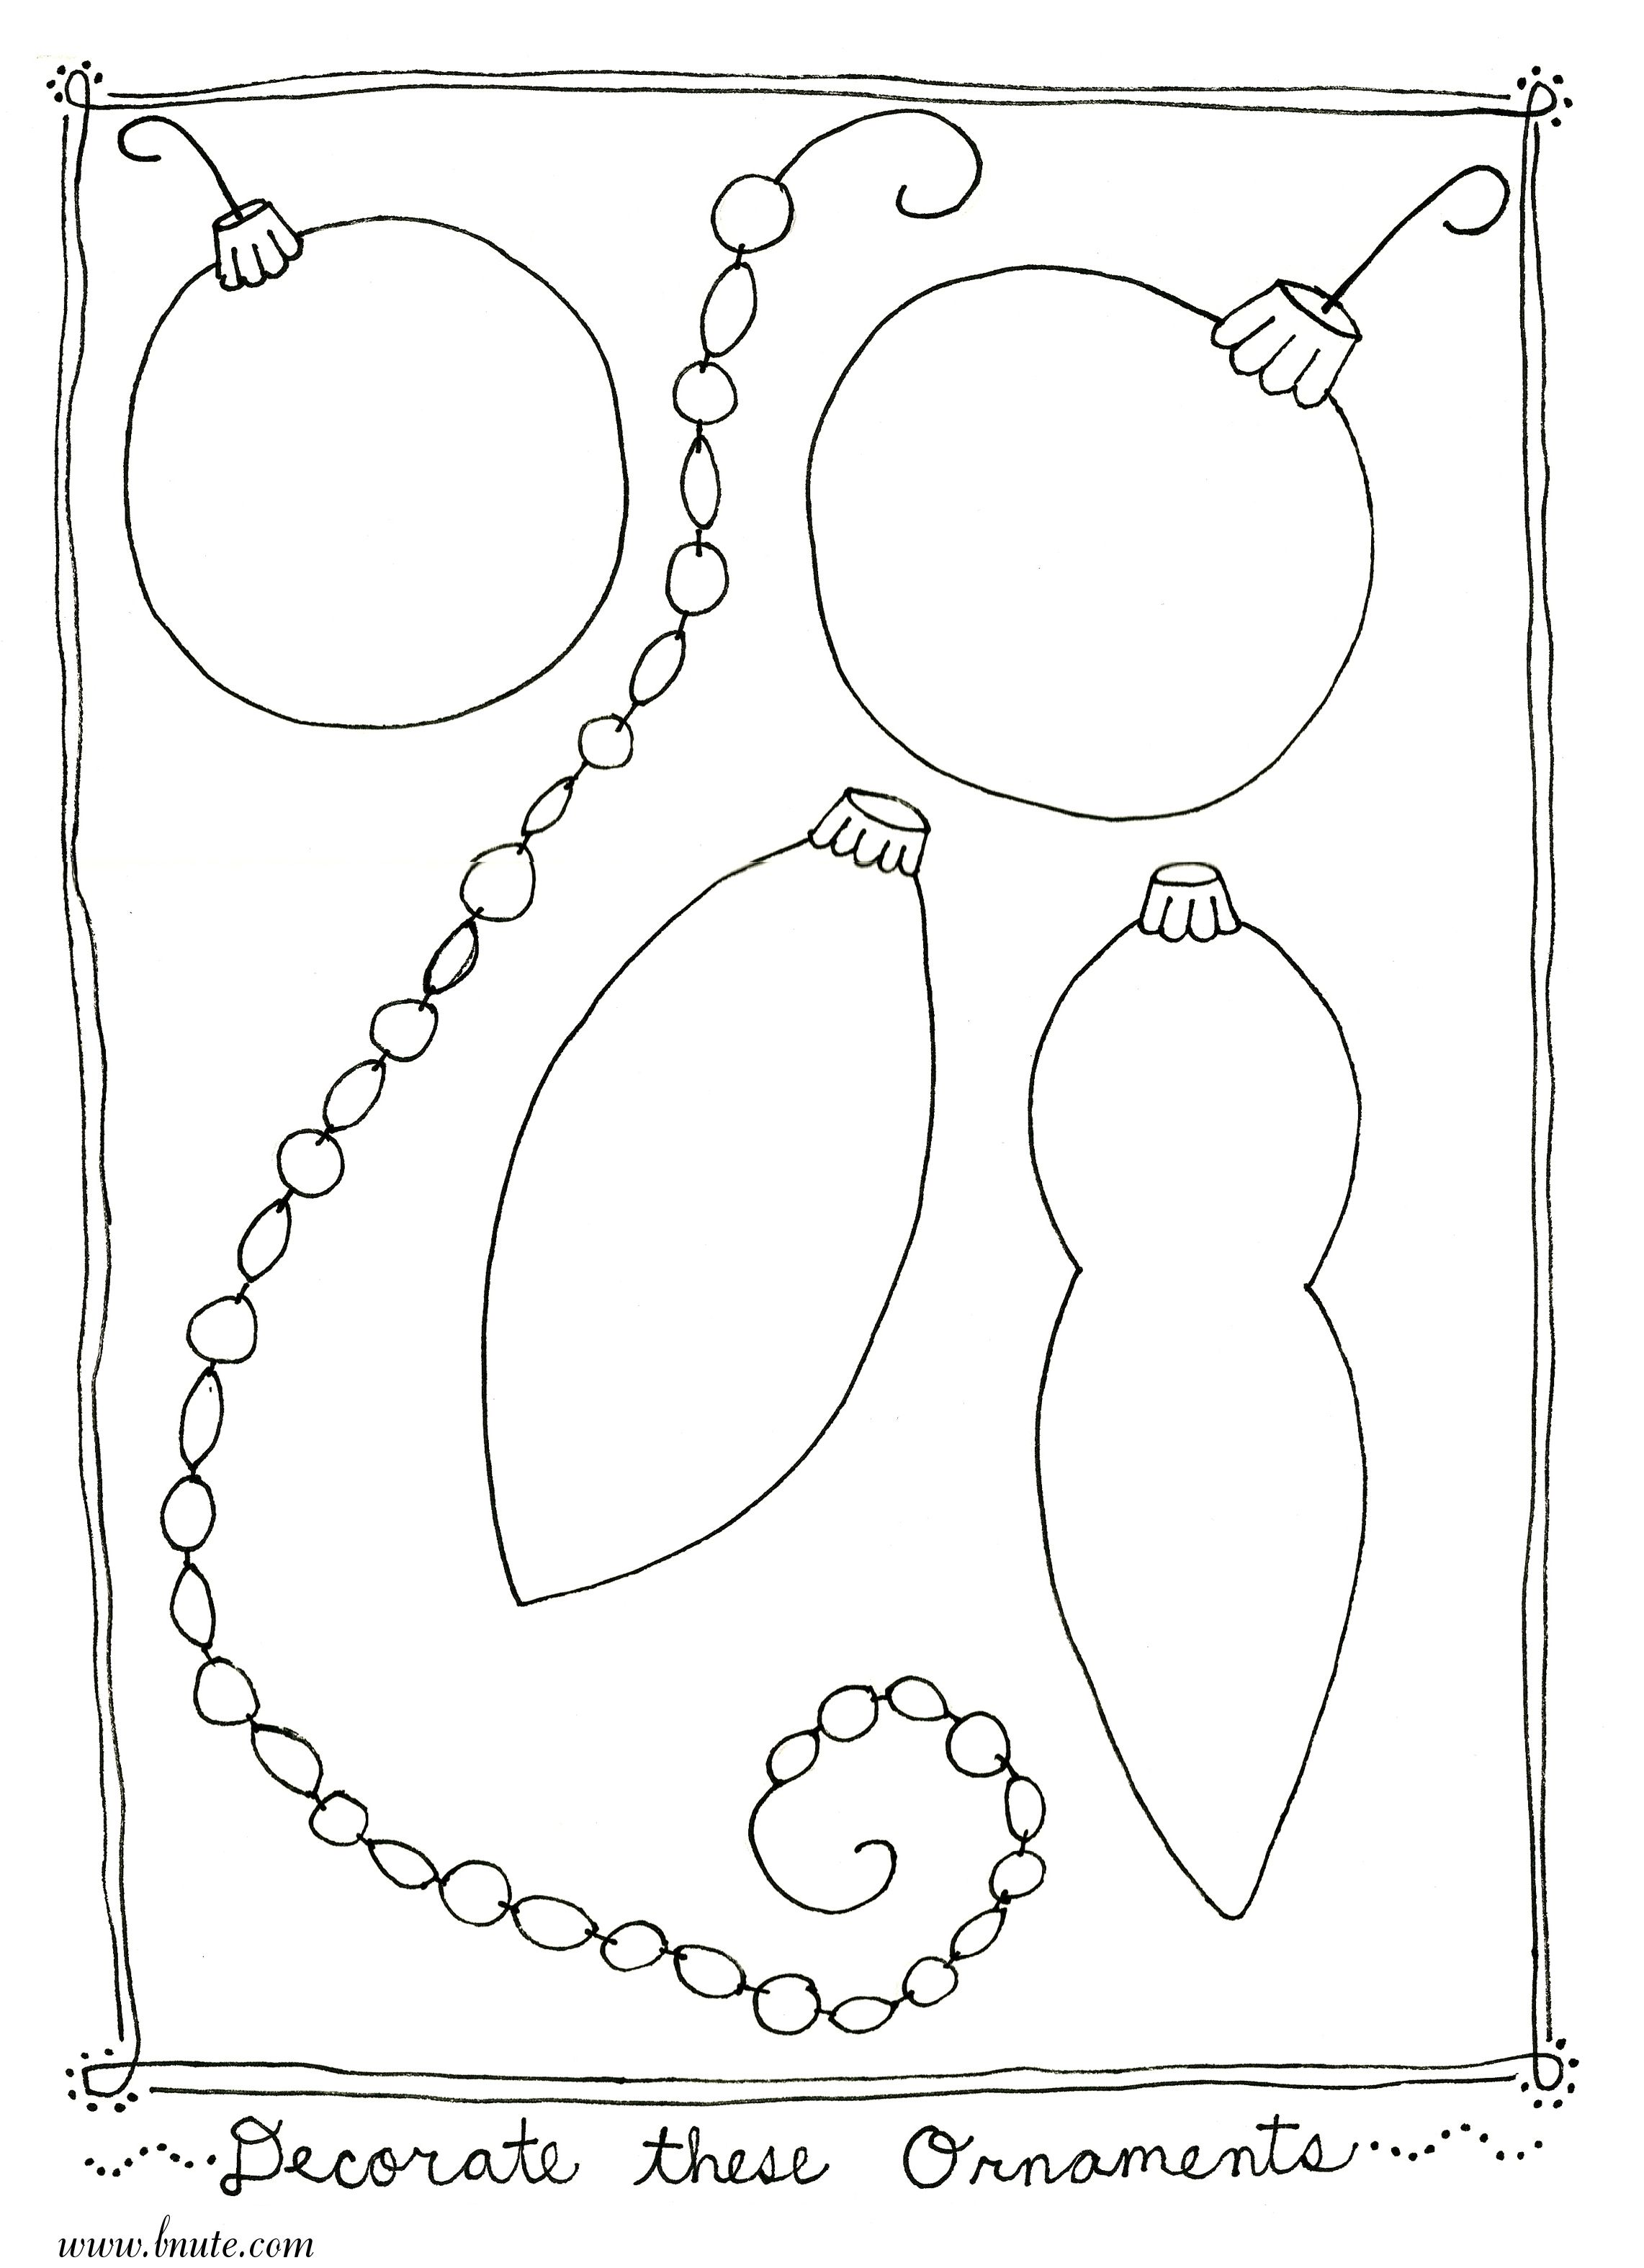 Christmas Ornament Coloring Pages | More Christmas Printable Art ...